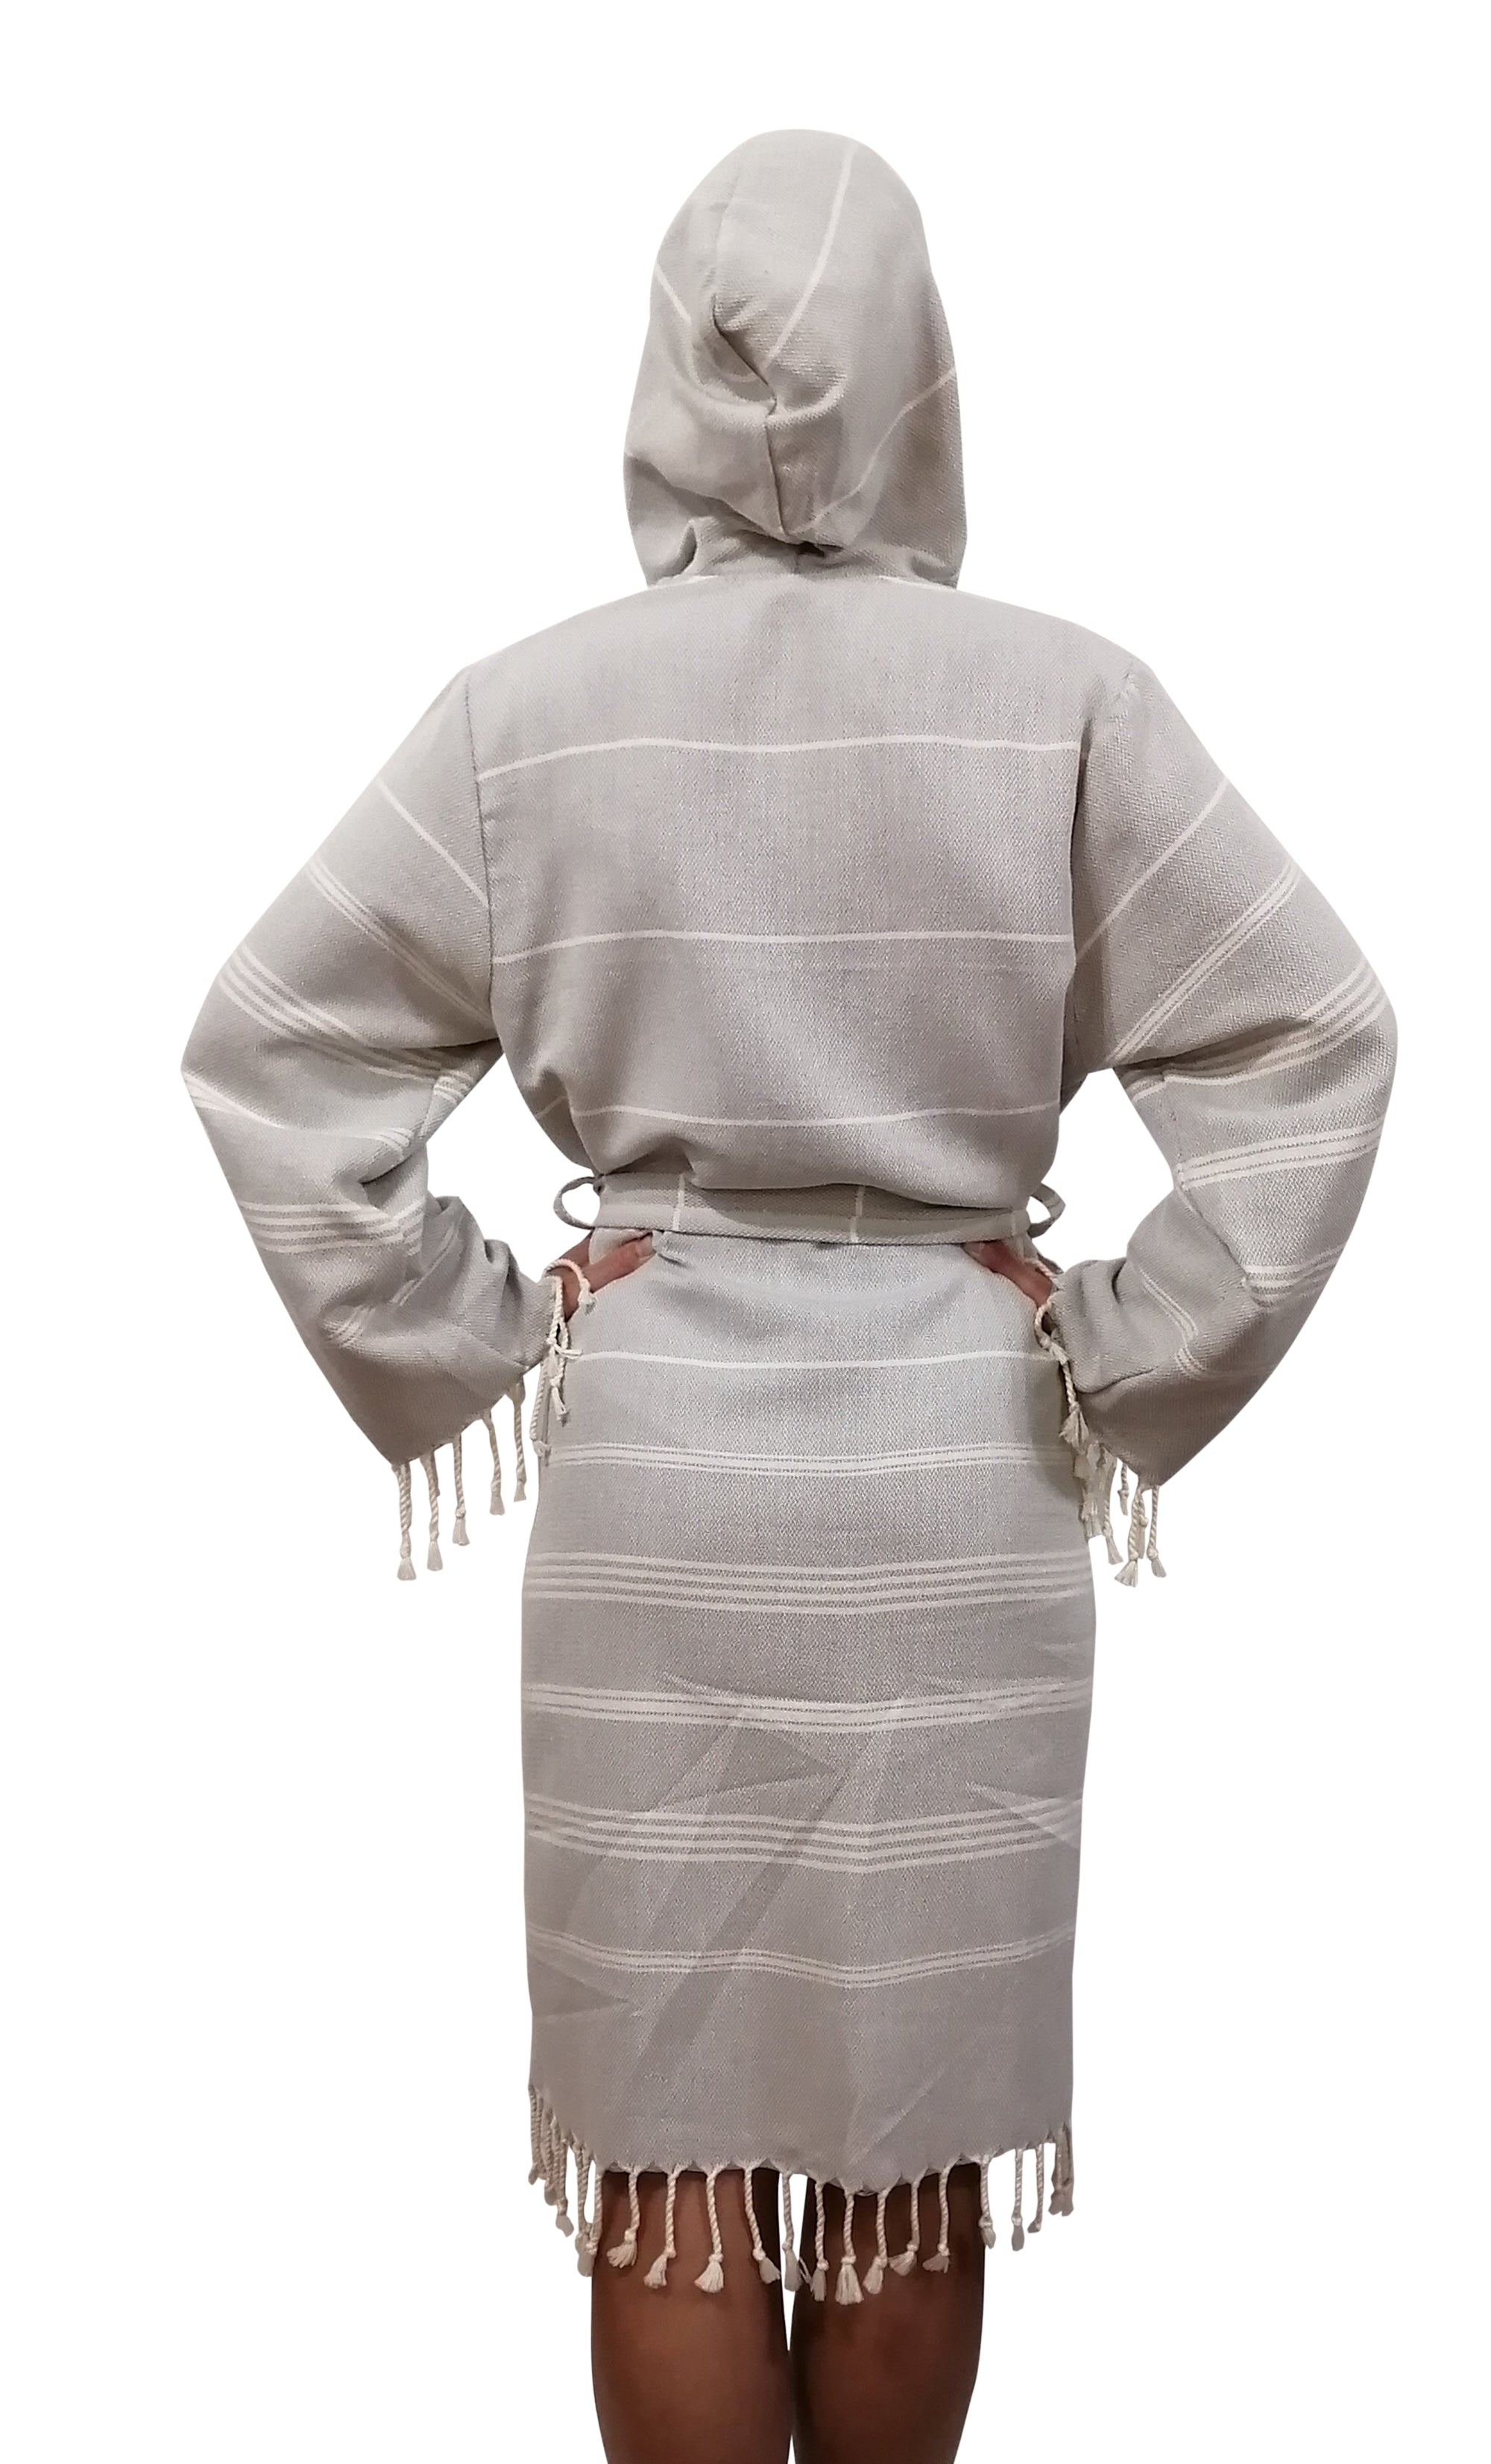 Turkish Hammam robe sultan silver made with the finest quality Turkish cotton, super soft, lightweight Turkish towel robes, Perfect for drying off and staying warm, superior absorbency with striped patterns